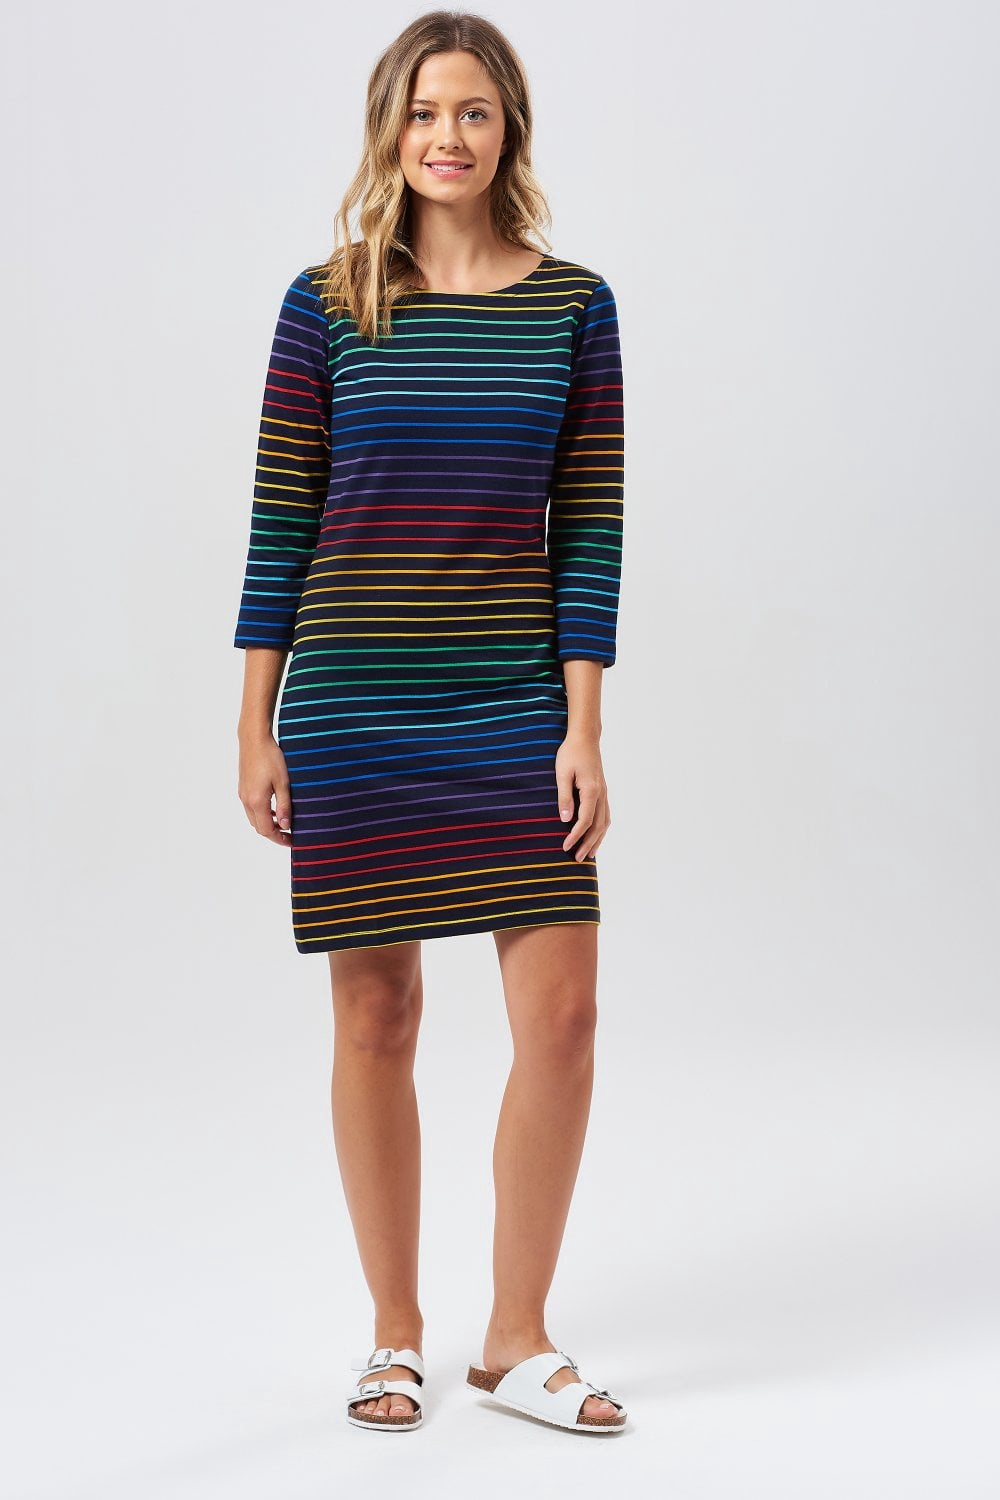 Triple Rainbow T-Shirt Dress